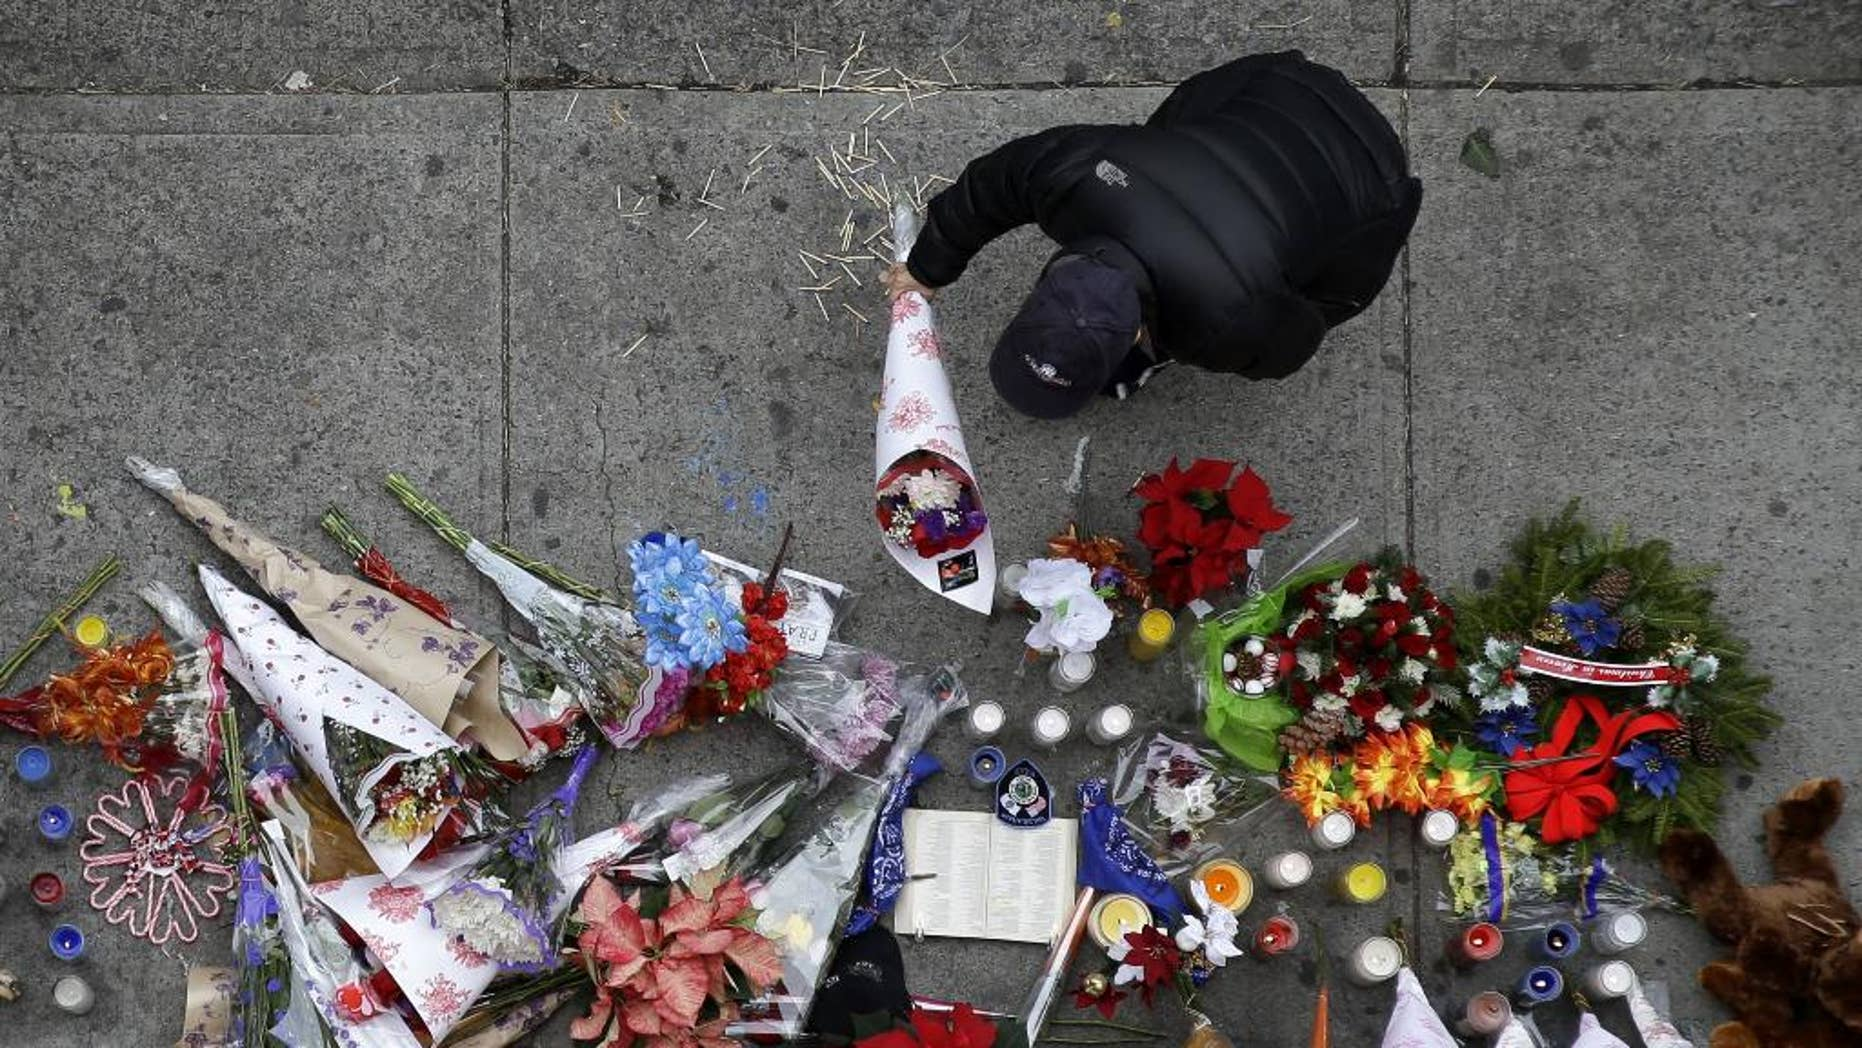 A man leaves flowers at an impromptu memorial near the site where two police officers were killed the day before in the Brooklyn borough of New York, Sunday, Dec. 21, 2014. Police say Ismaaiyl Brinsley ambushed officers Rafael Ramos and Wenjian Liu in their patrol car in broad daylight Saturday, fatally shooting them before killing himself inside a subway station. (AP Photo/Seth Wenig)